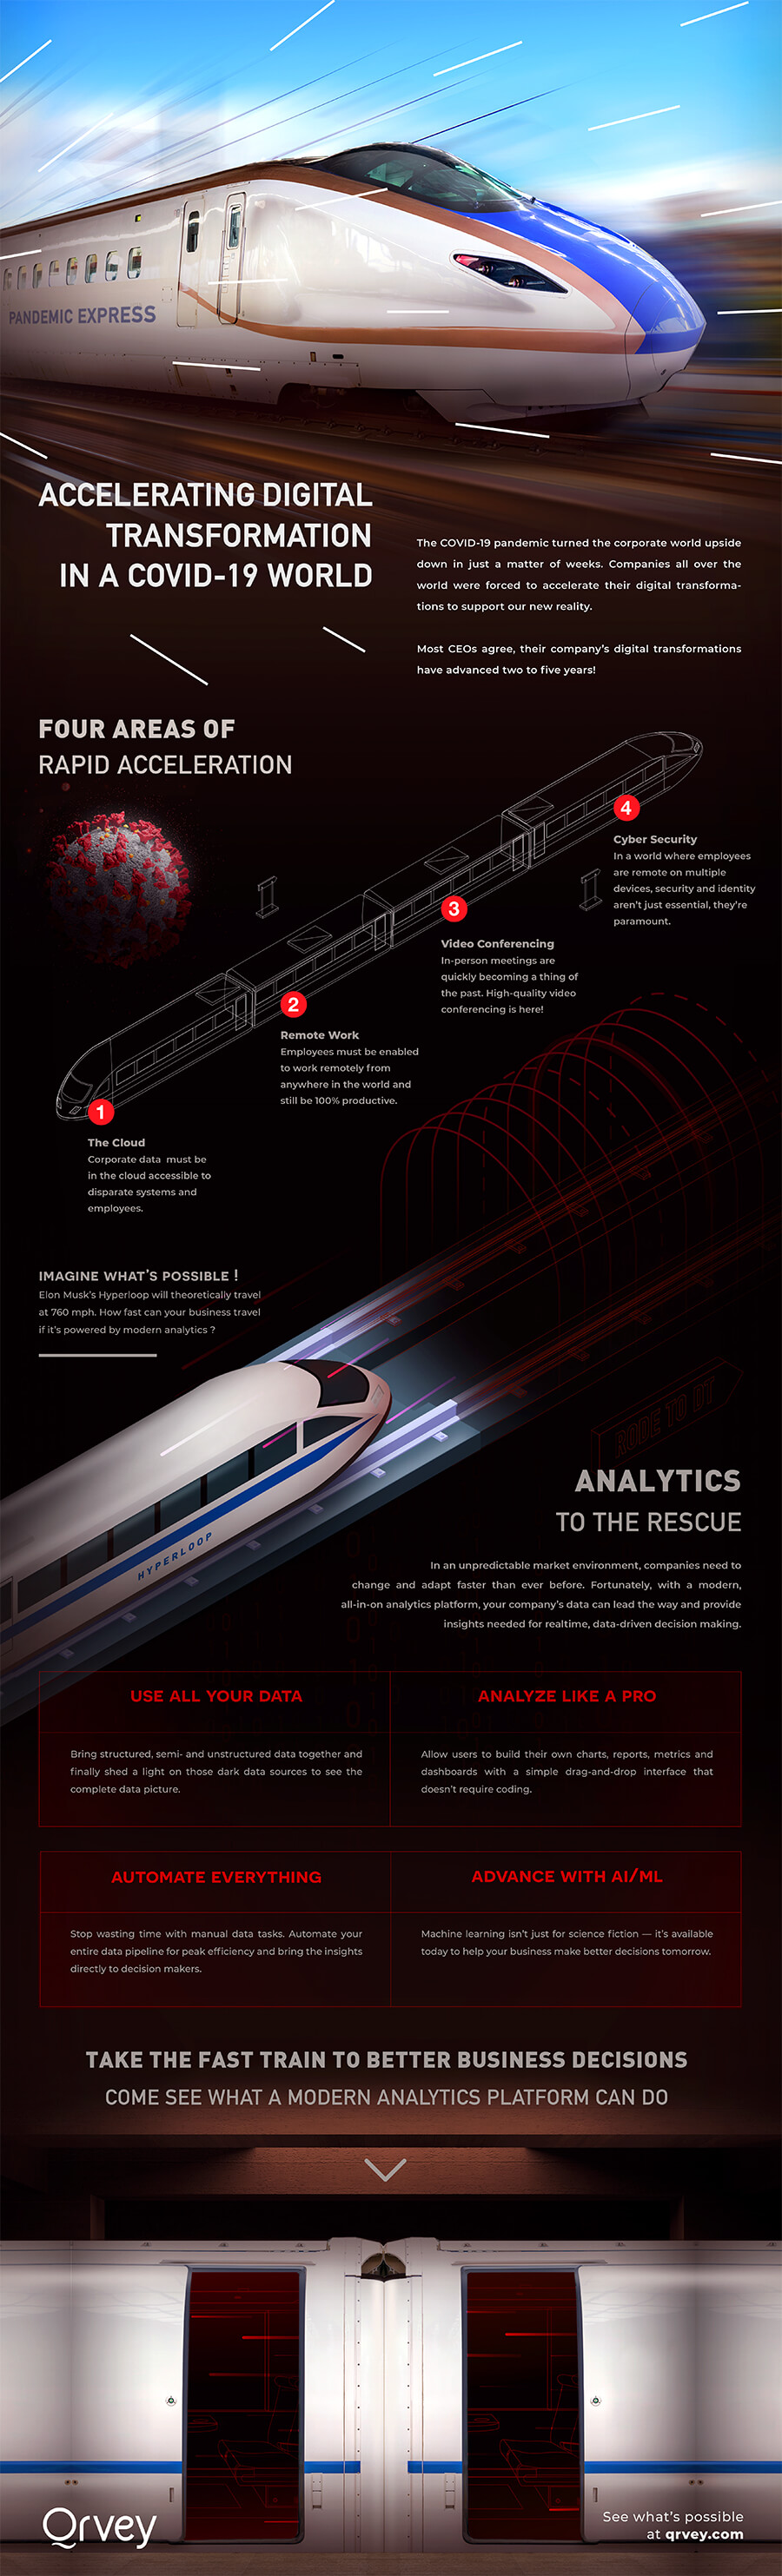 Infographic: Accelerating Digital Transformation